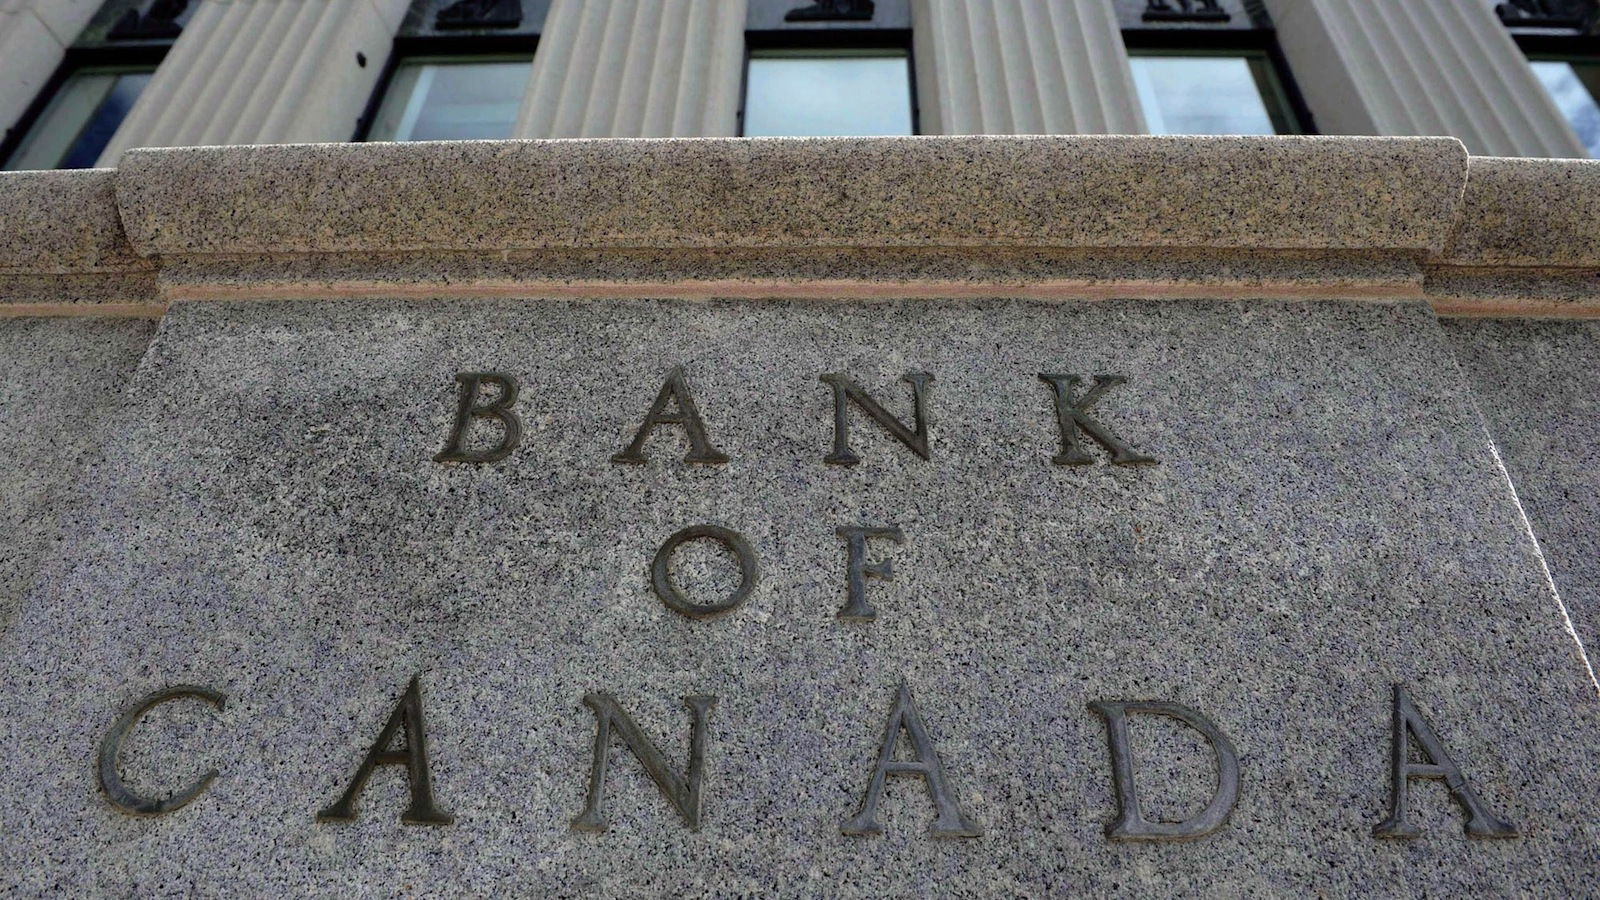 The Bank of Canada marker is pictured in Ottawa on September 6, 2011. (THE CANADIAN PRESS/Sean Kilpatrick)